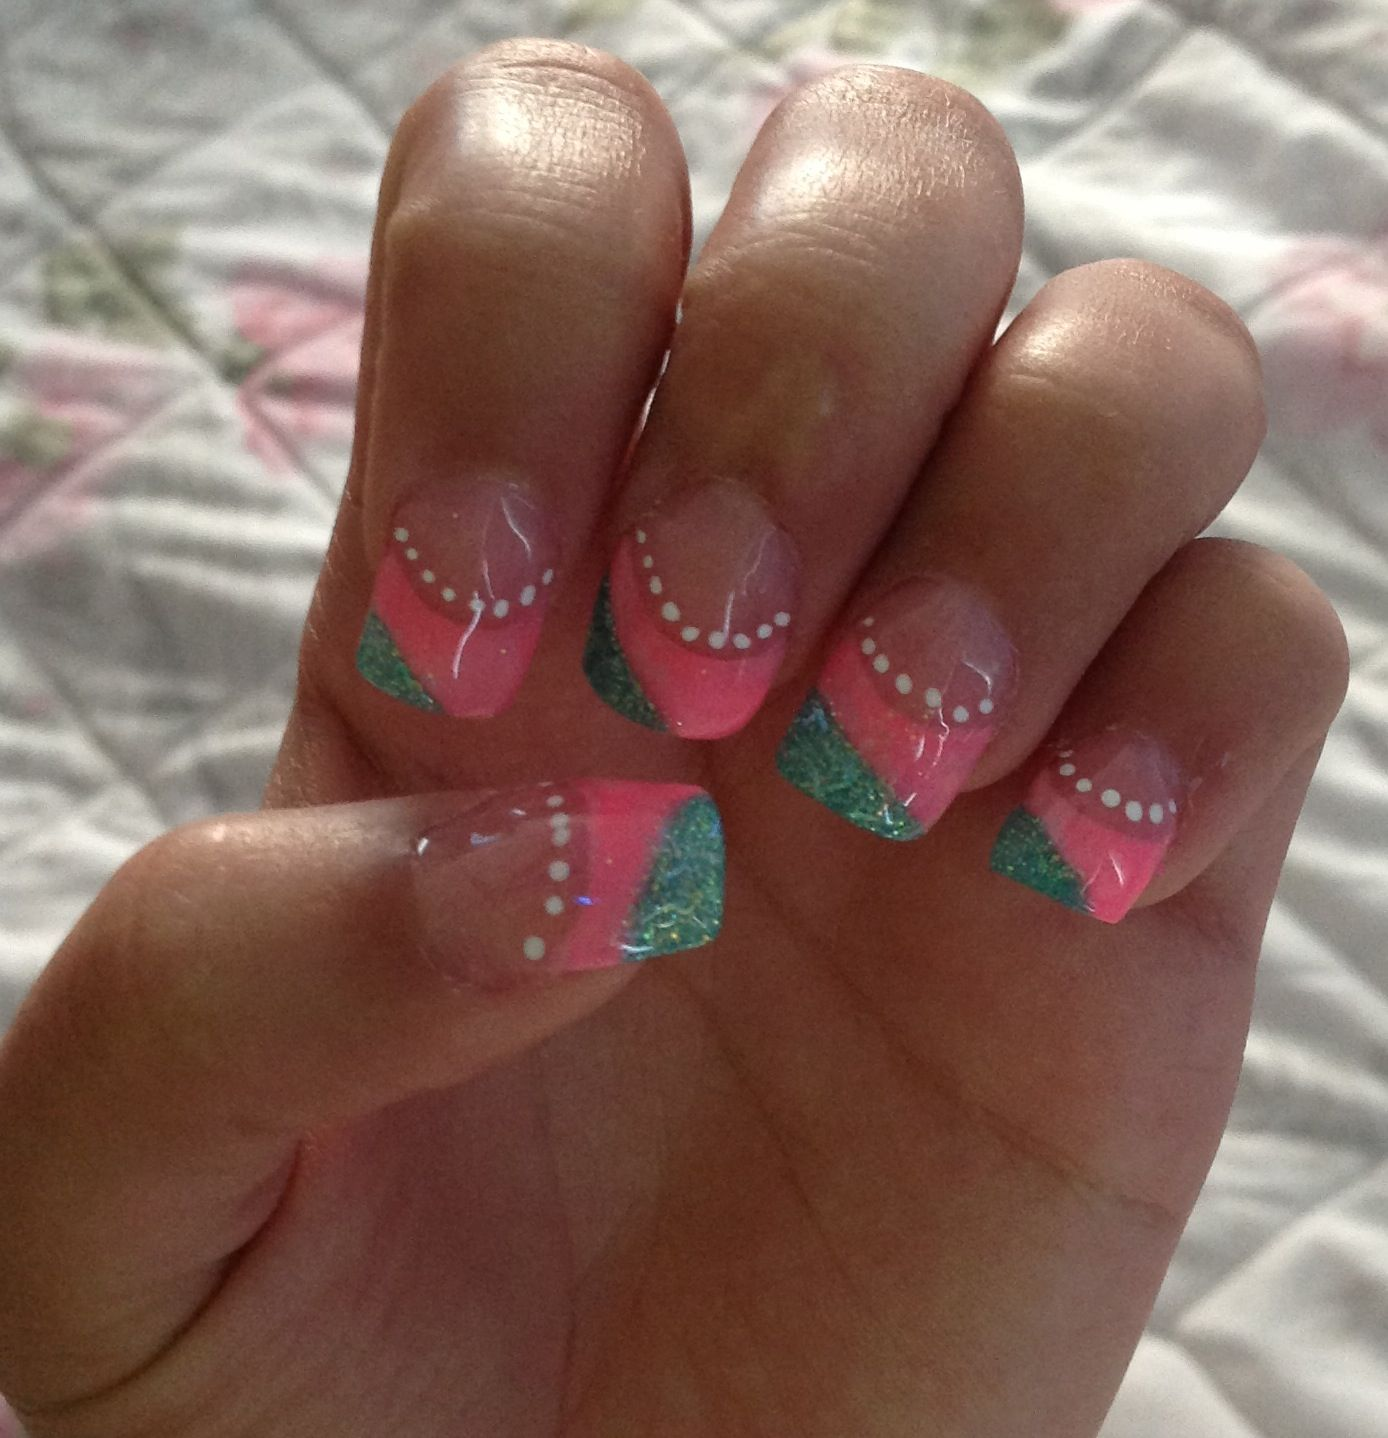 Pin by Helena Helis on Nails | Pinterest